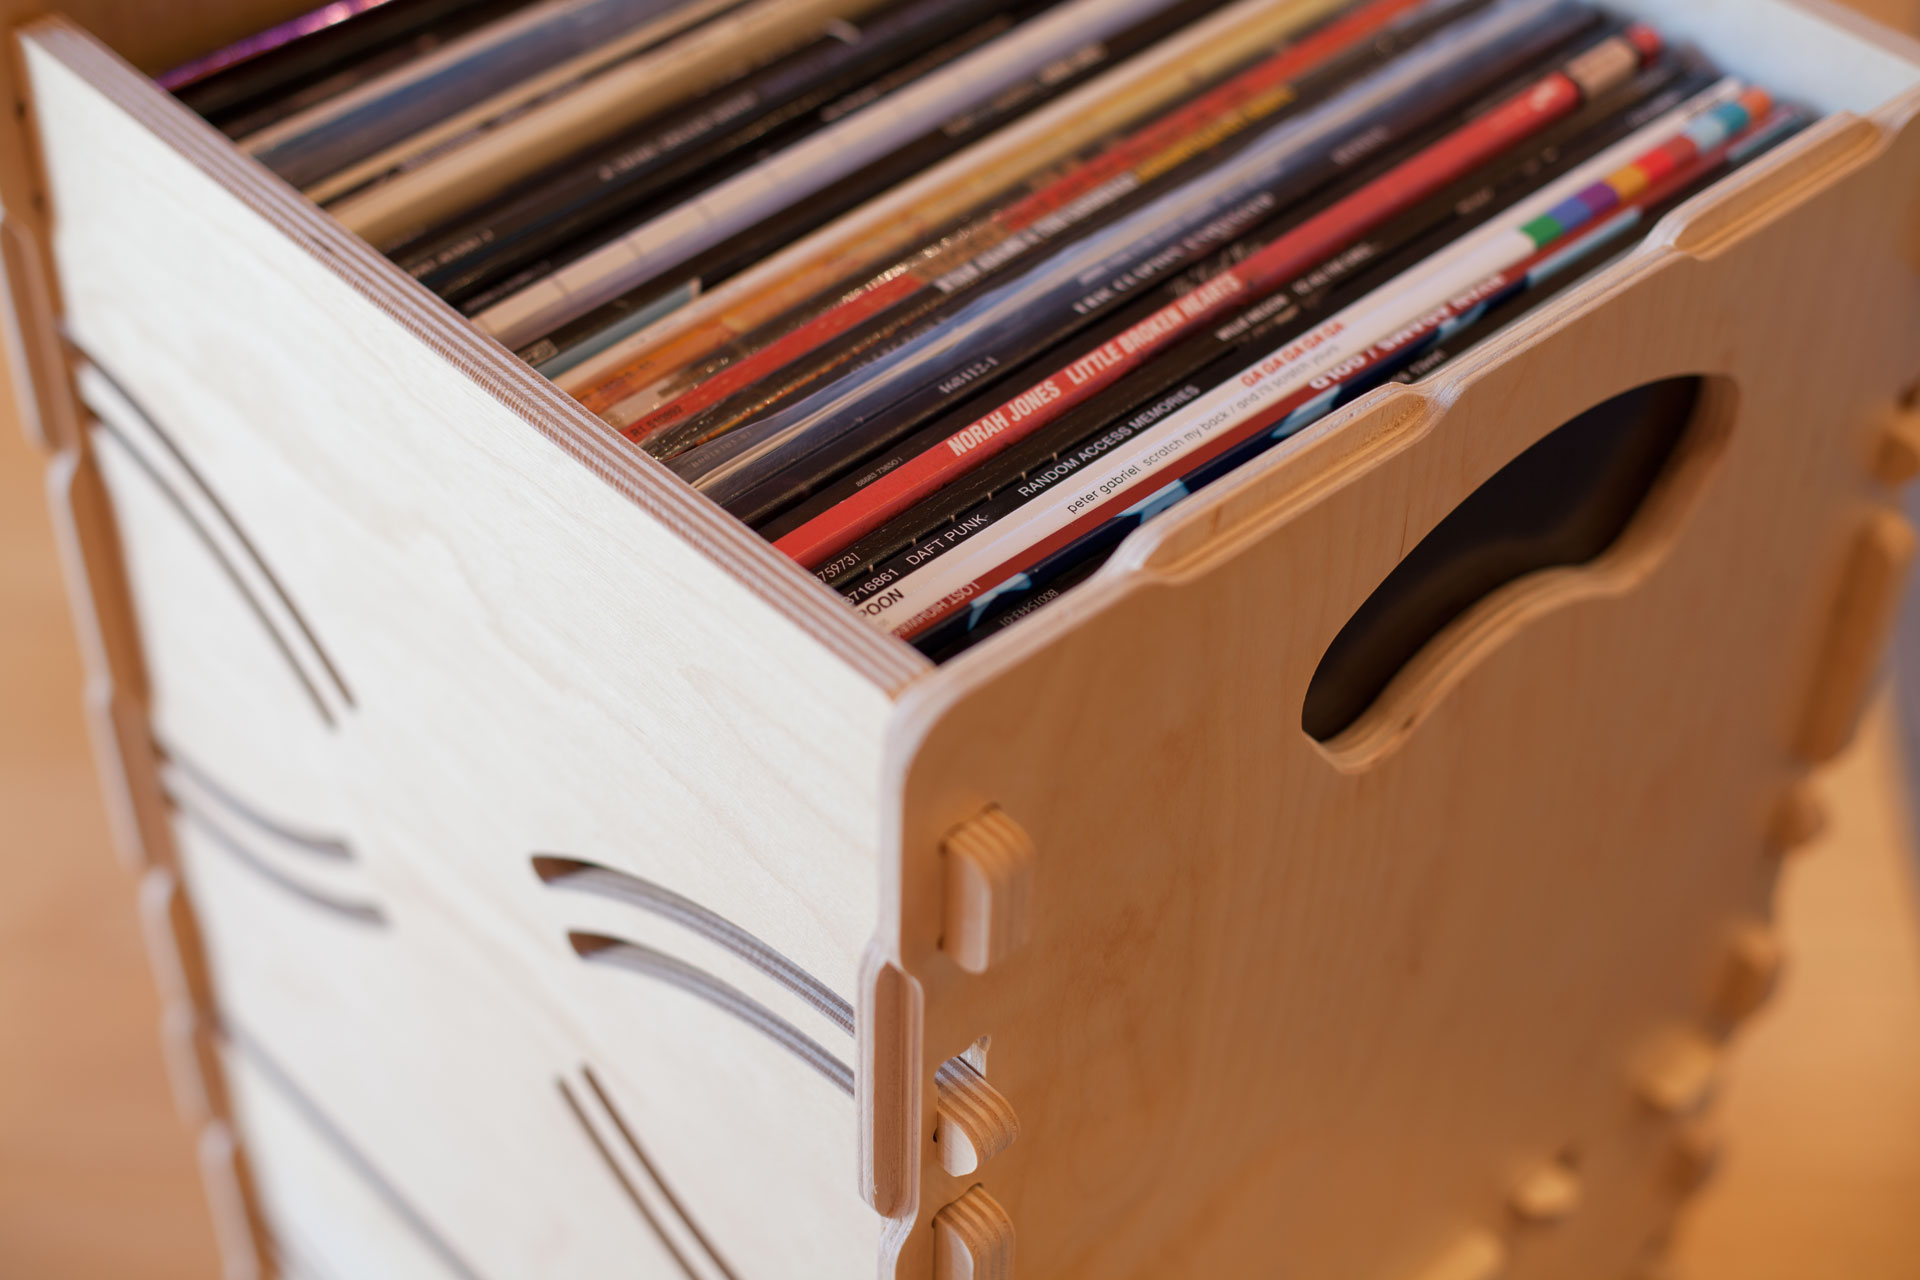 Stacked-Wax-Stacks-Record-Crate